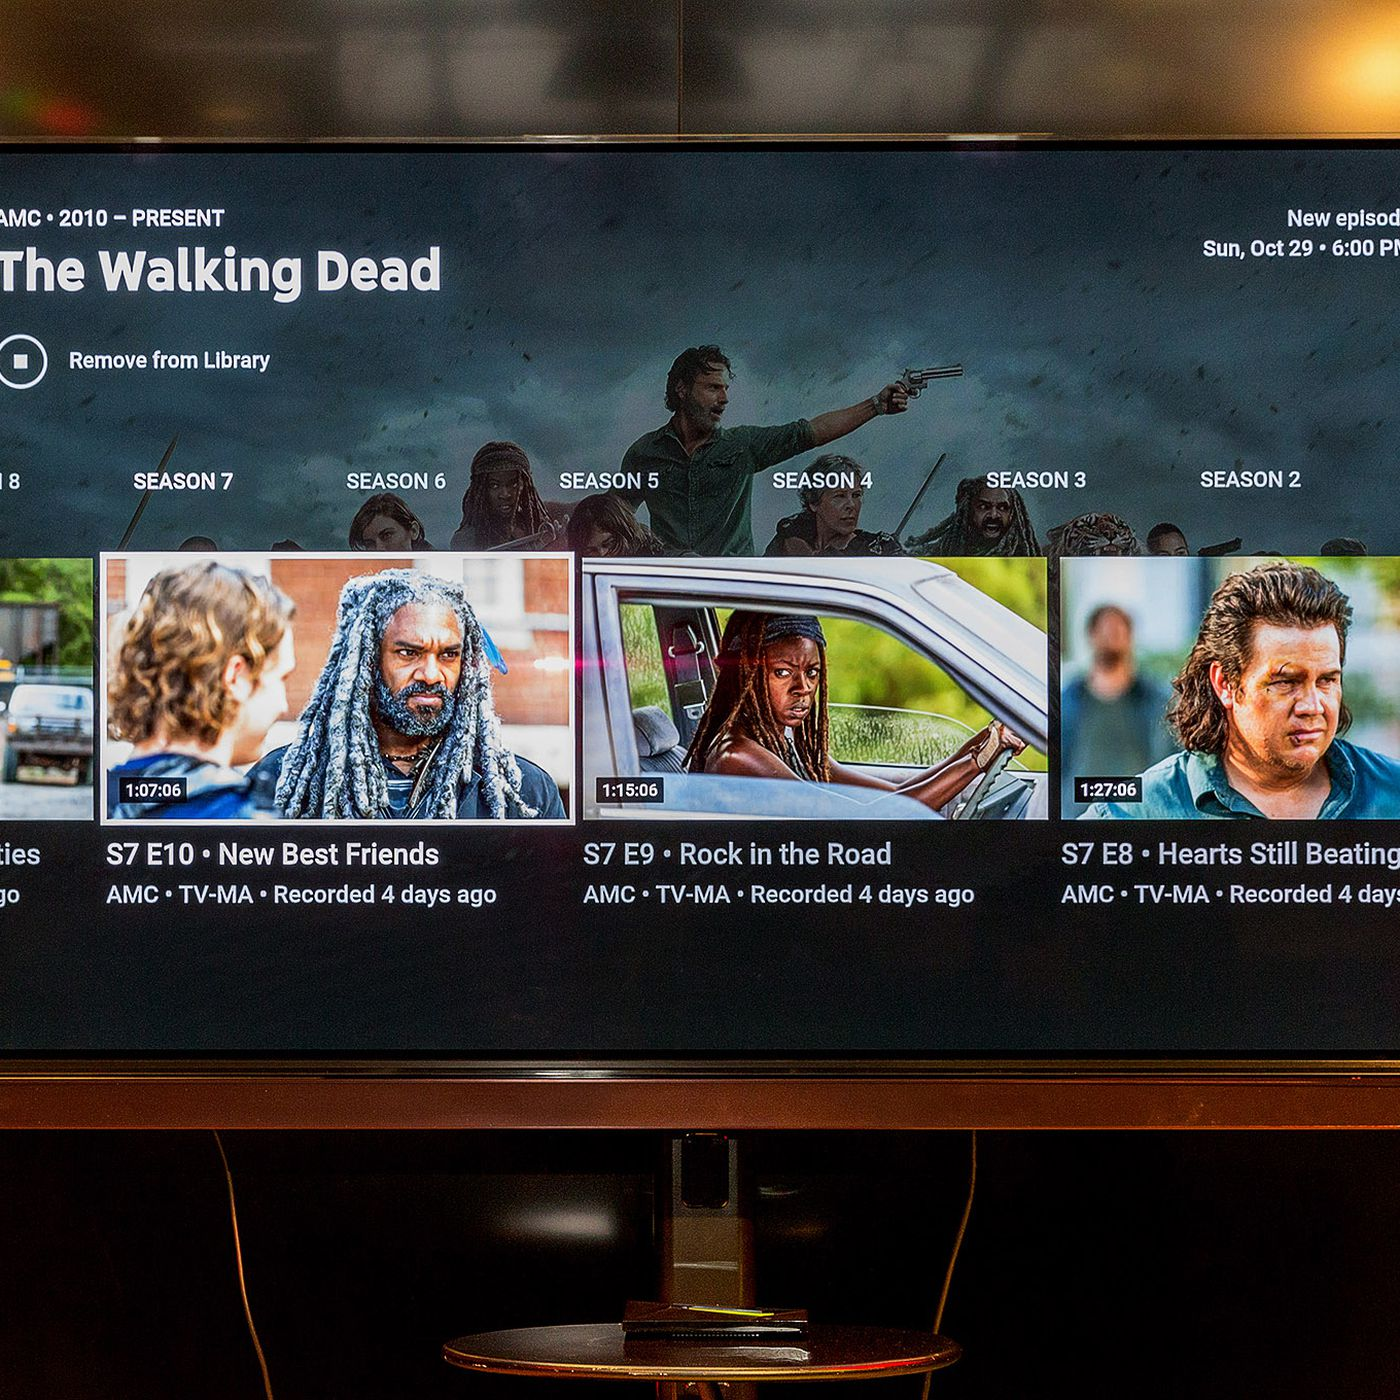 YouTube TV is rolling out on Apple TV, Roku, Xbox One, and more